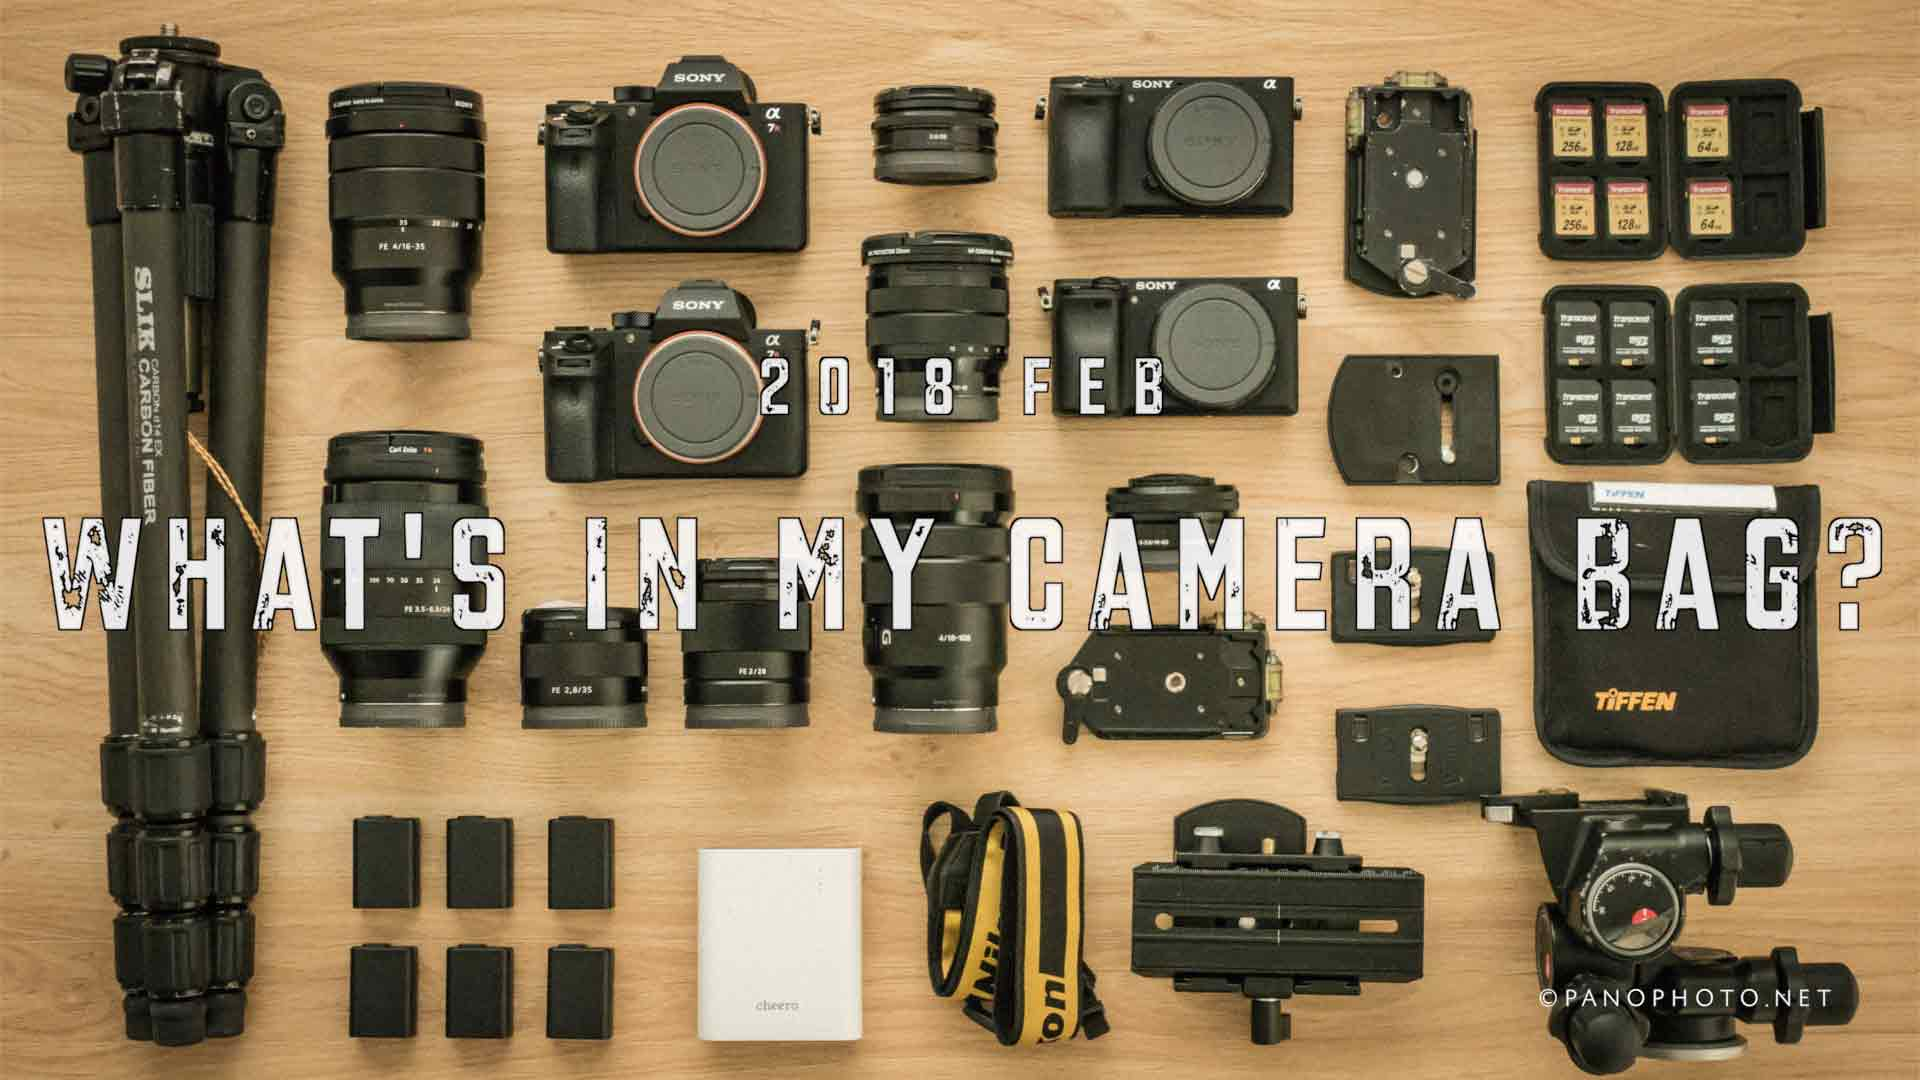 whats-in-my-camera-bag-featured-image